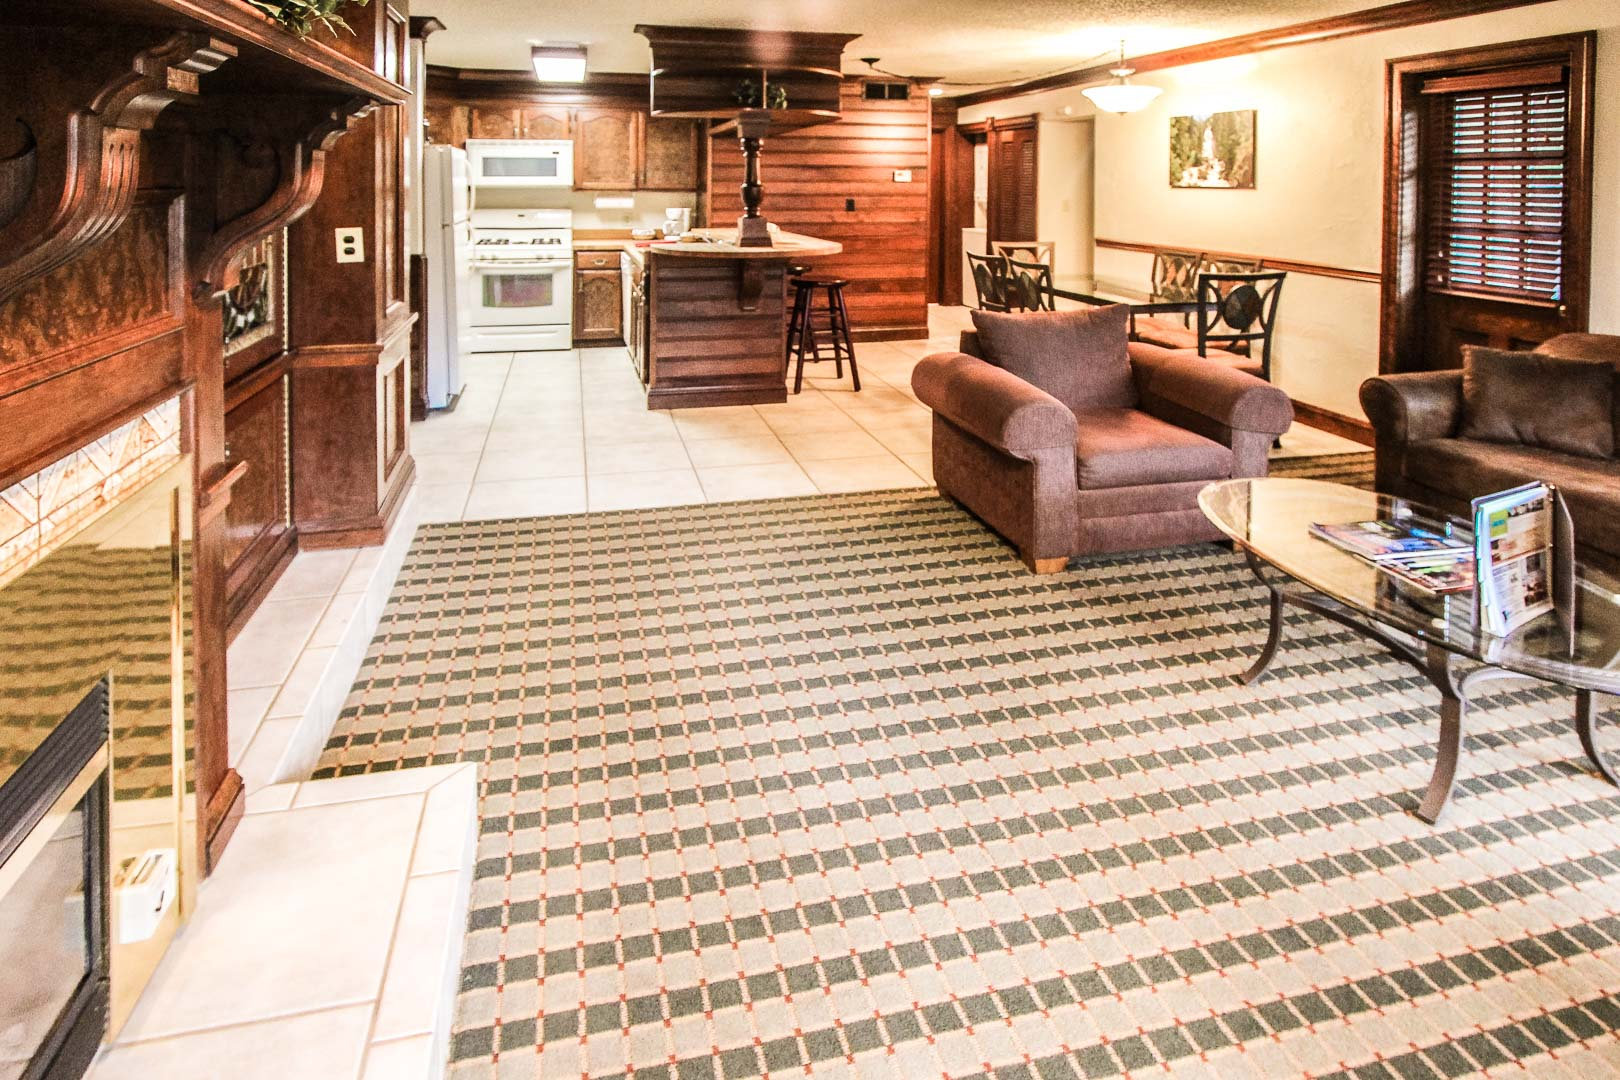 A spacious living room and kitchen at VRI's Sunburst Resort in Steamboat Springs, Colorado.